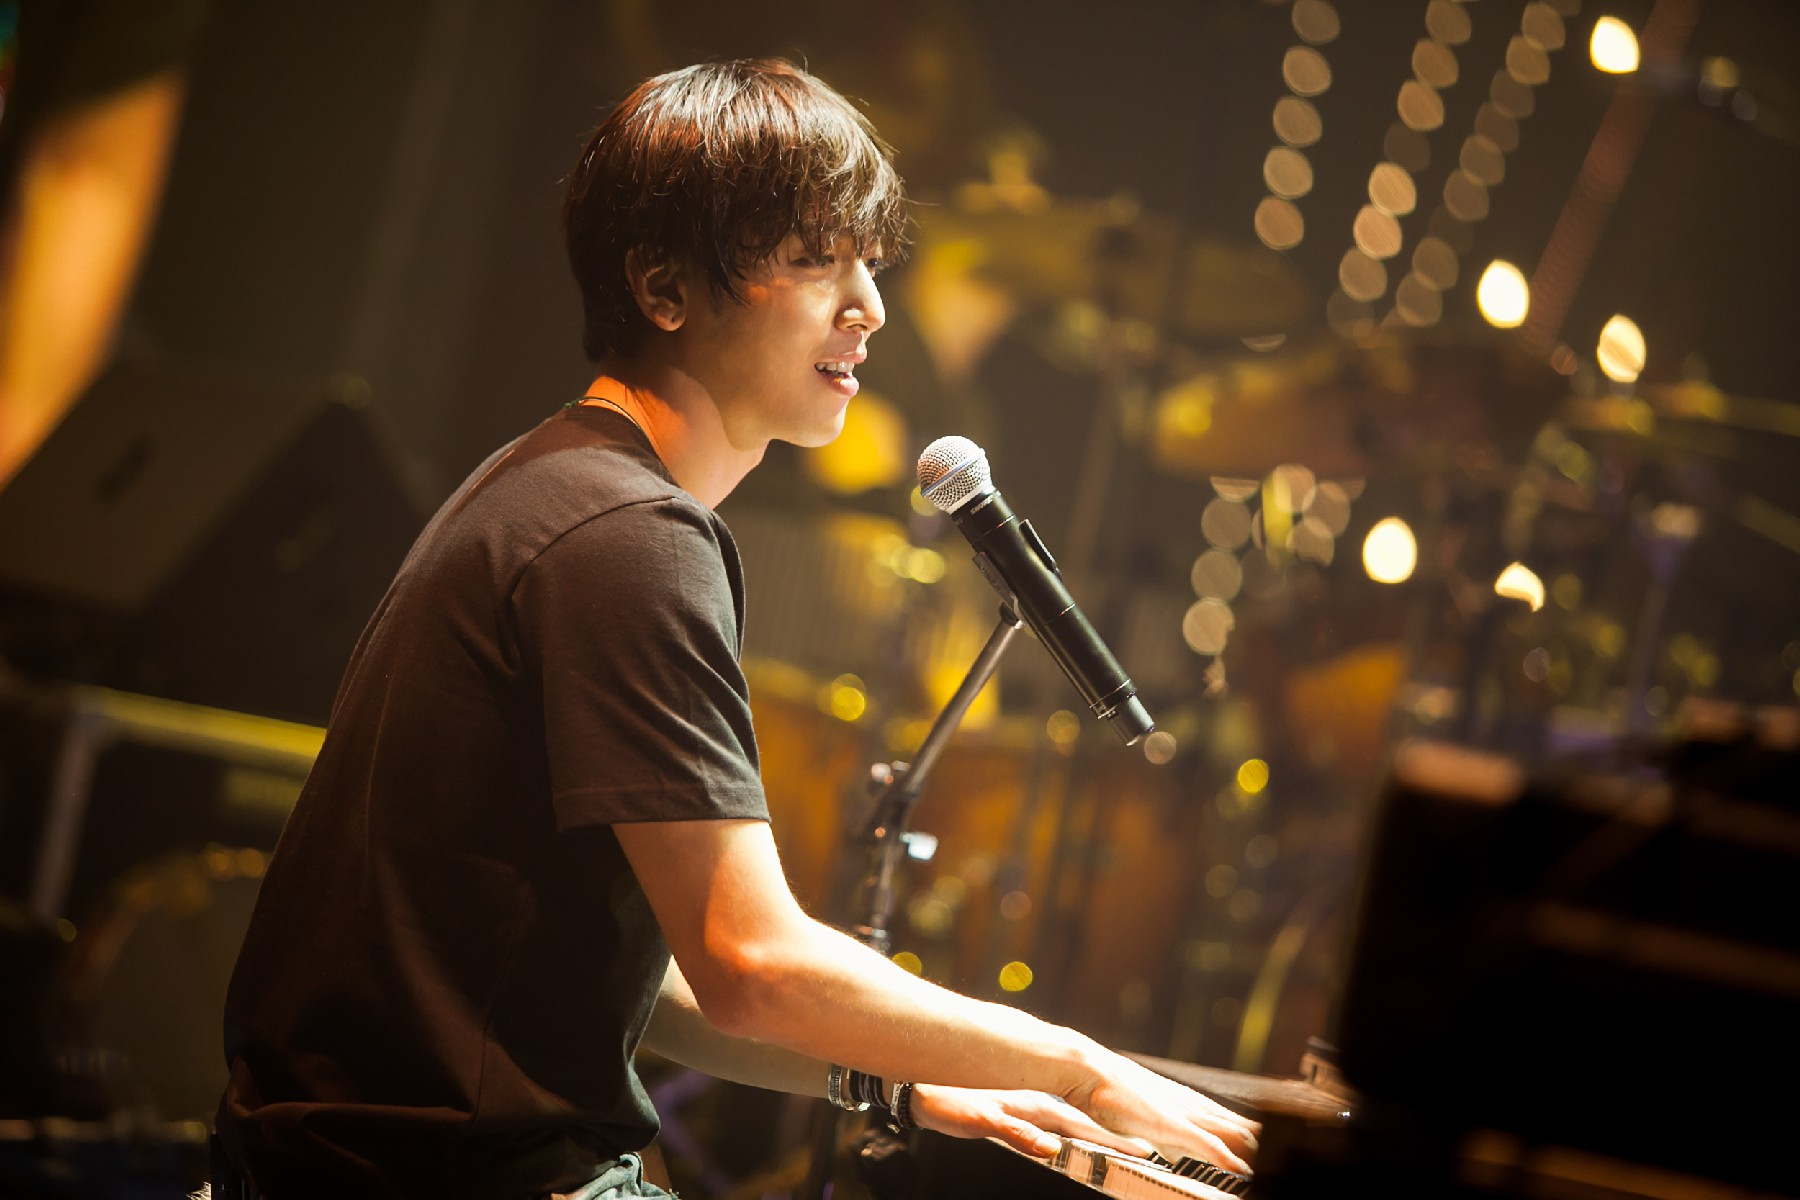 Check out Jung Yong Hwa's awesome live concert package